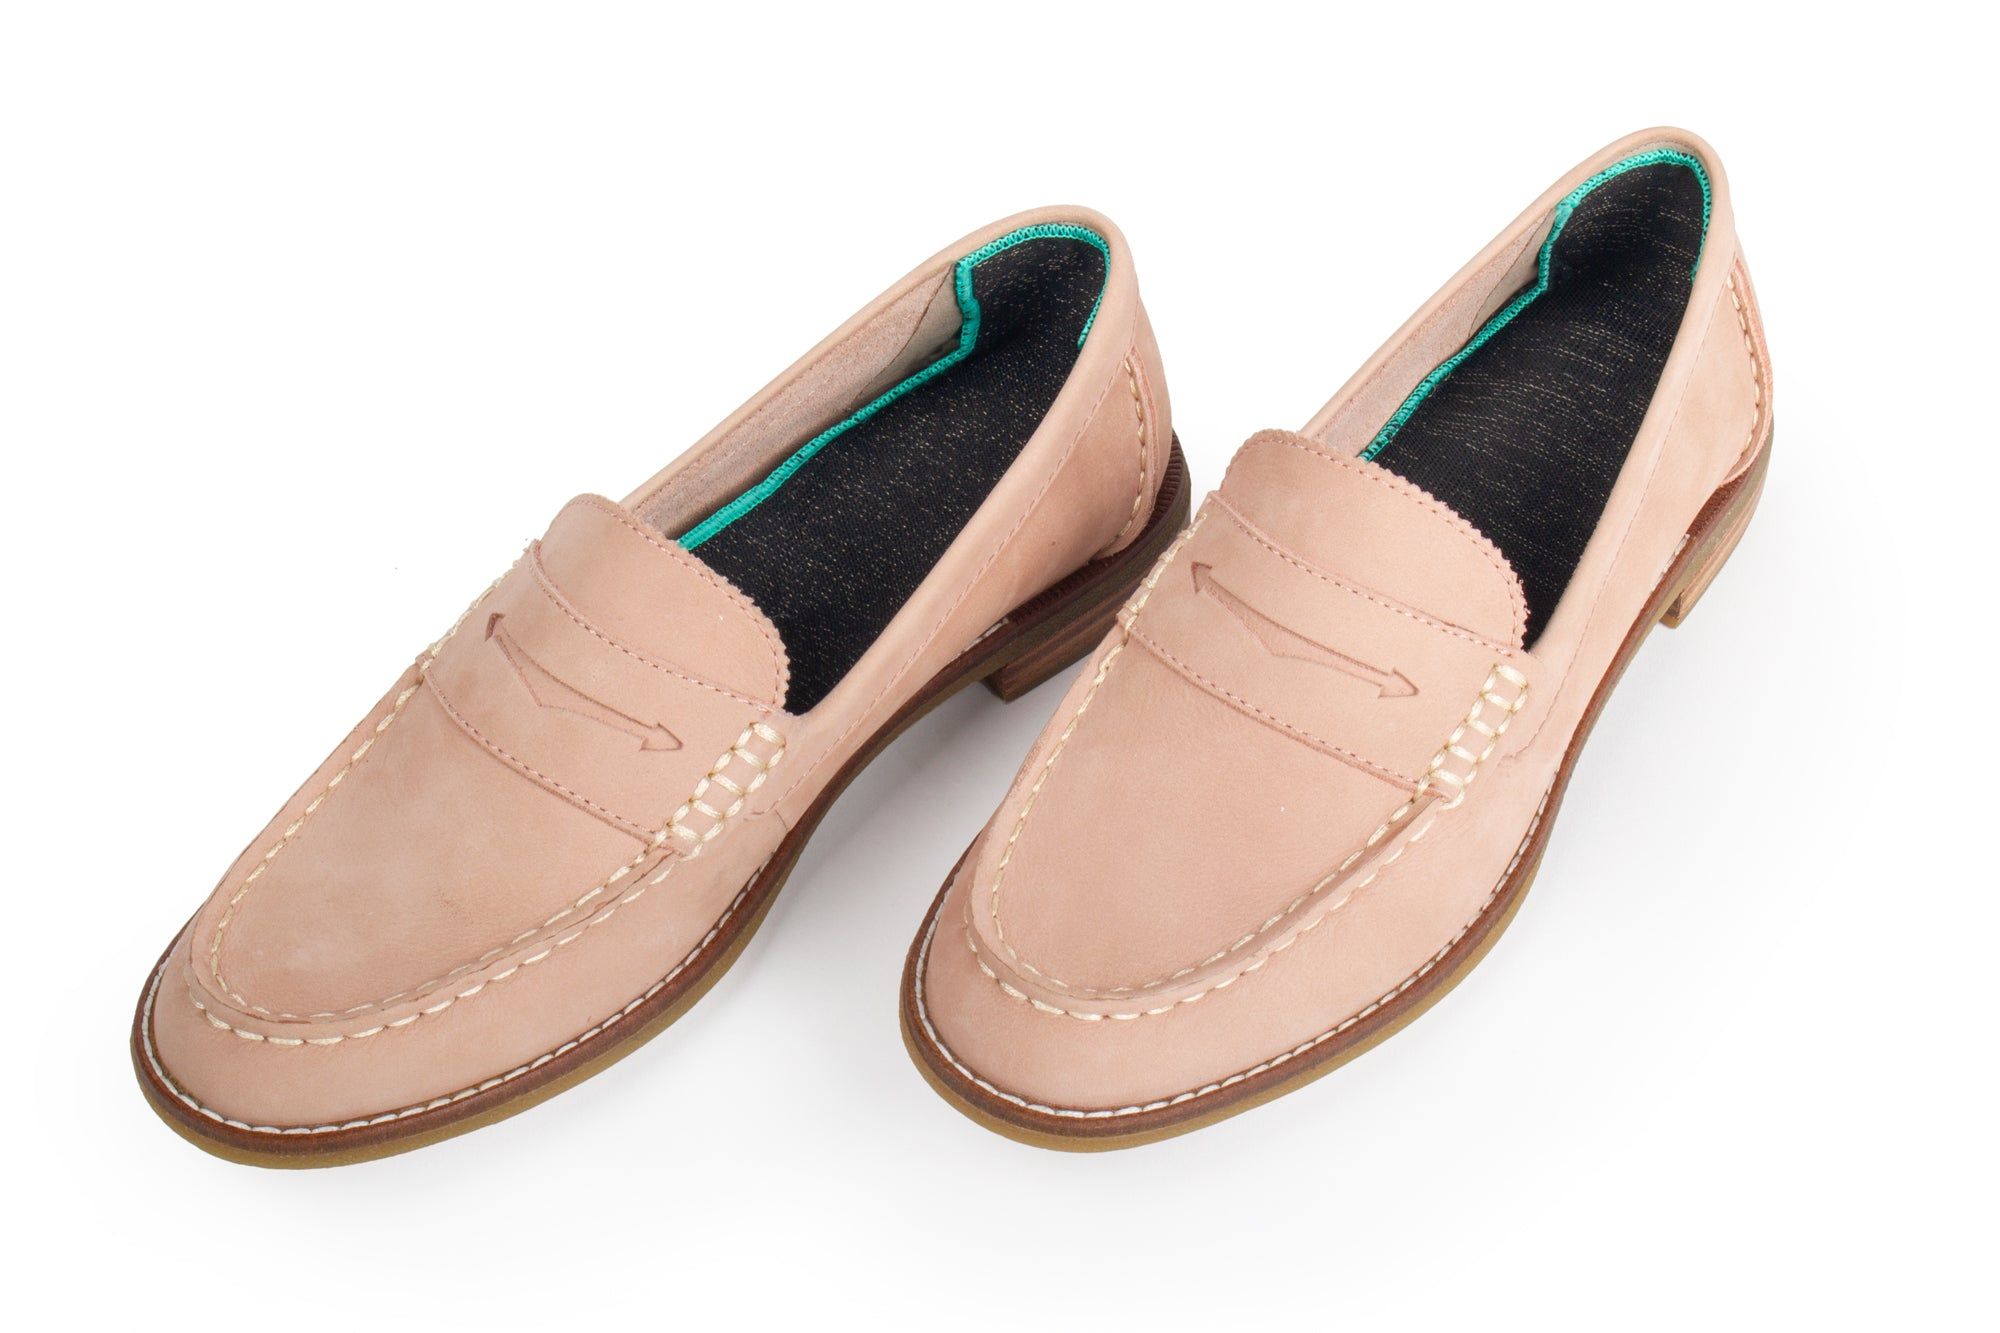 Loafers Slip Ons